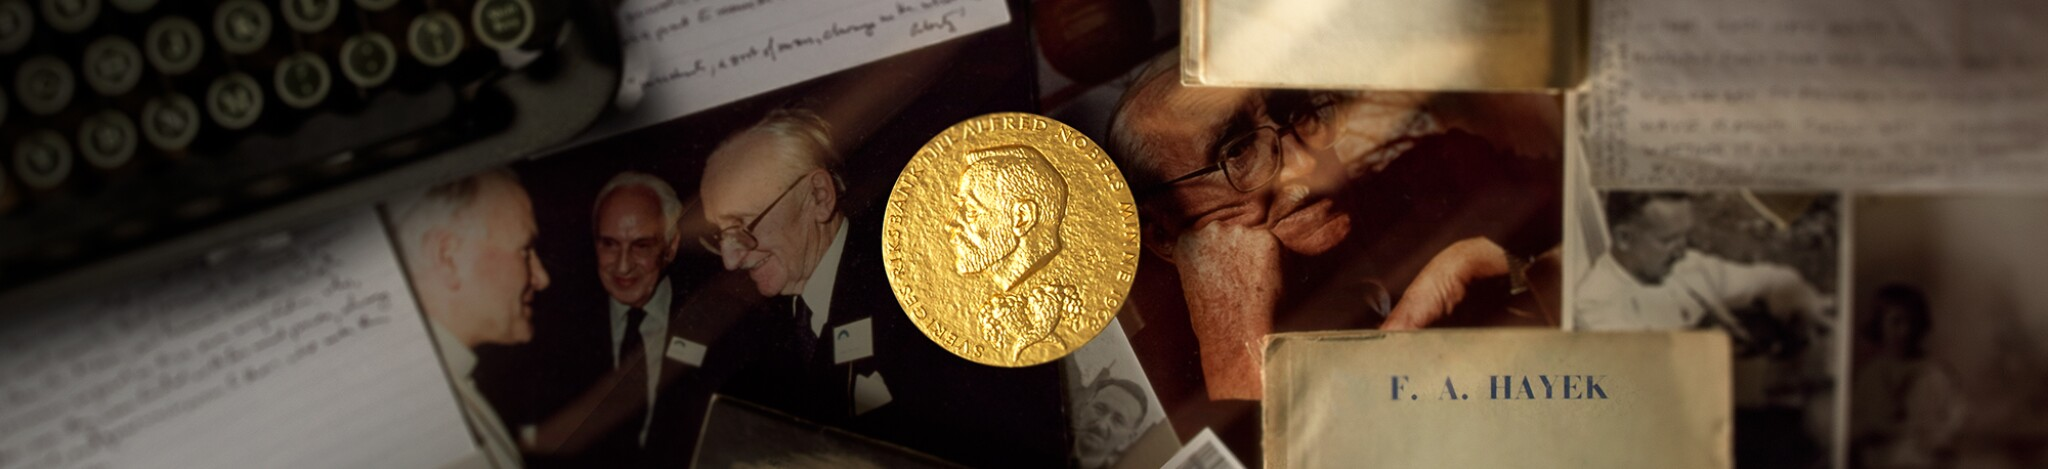 Friedrich von Hayek: His Nobel Prize and Family Collection